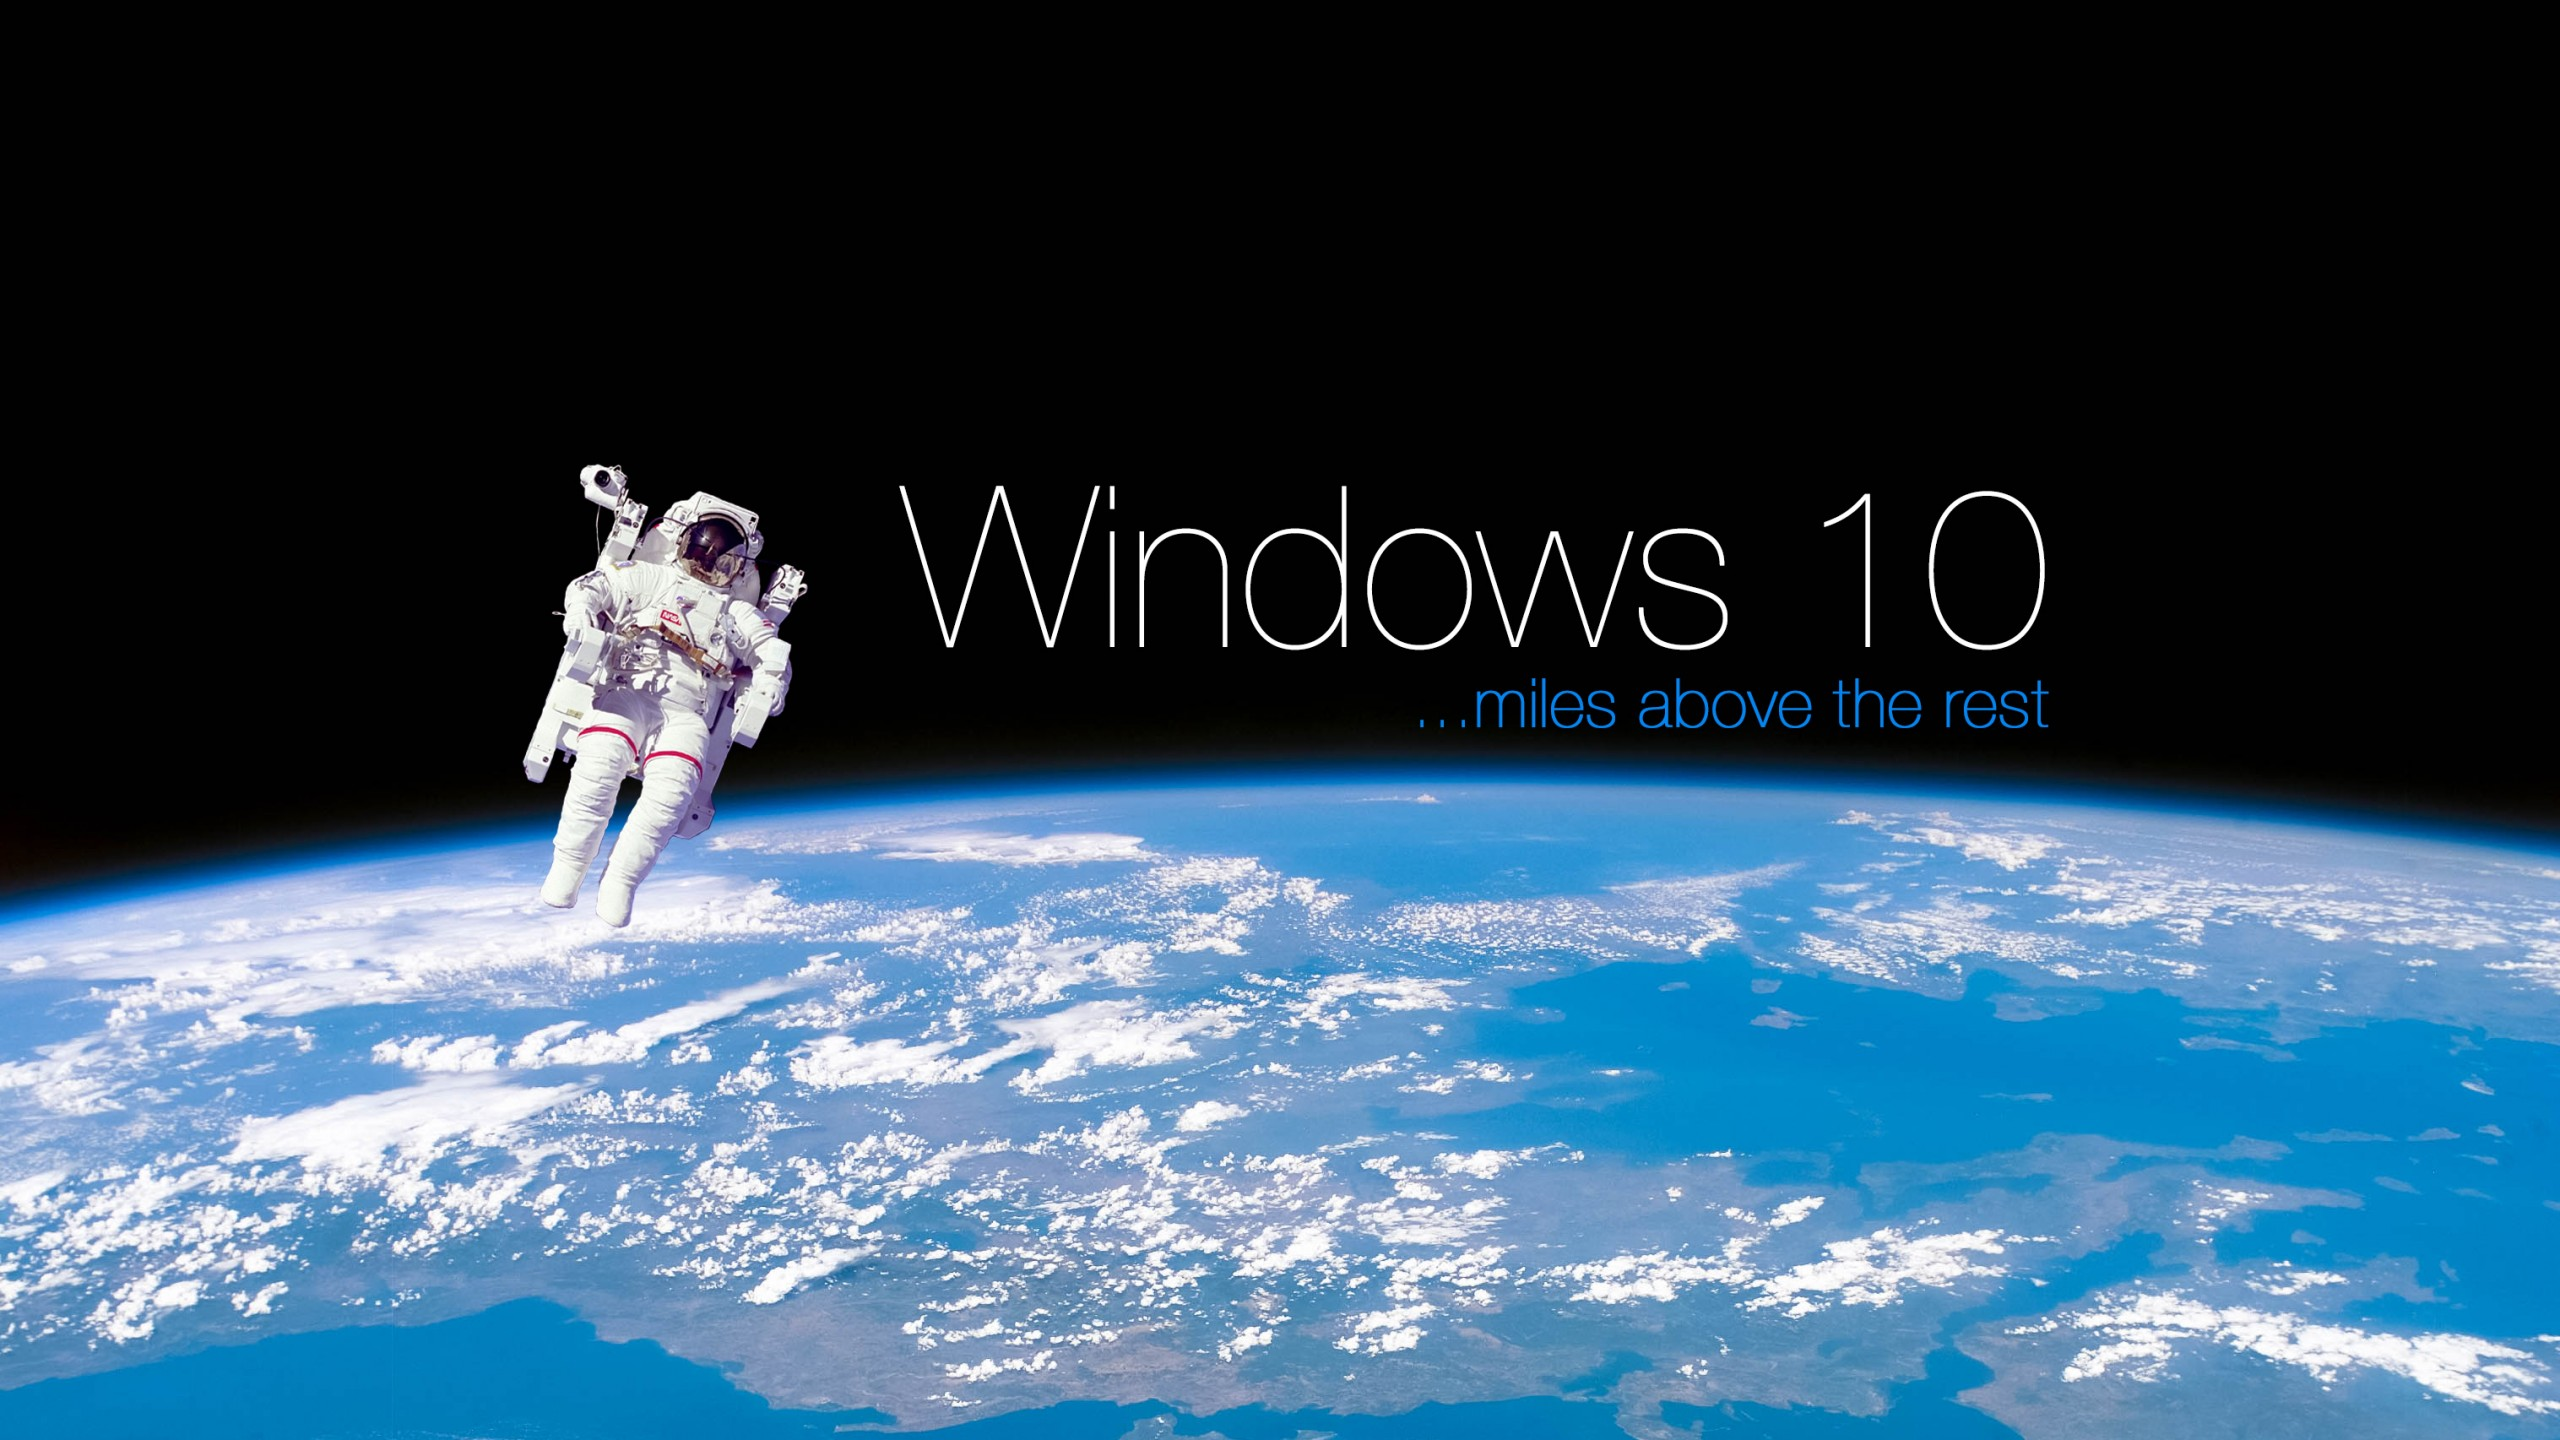 Windows 10 space 4k wallpaper 2560x1440   Wallpaper   Wallpaper Style 2560x1440